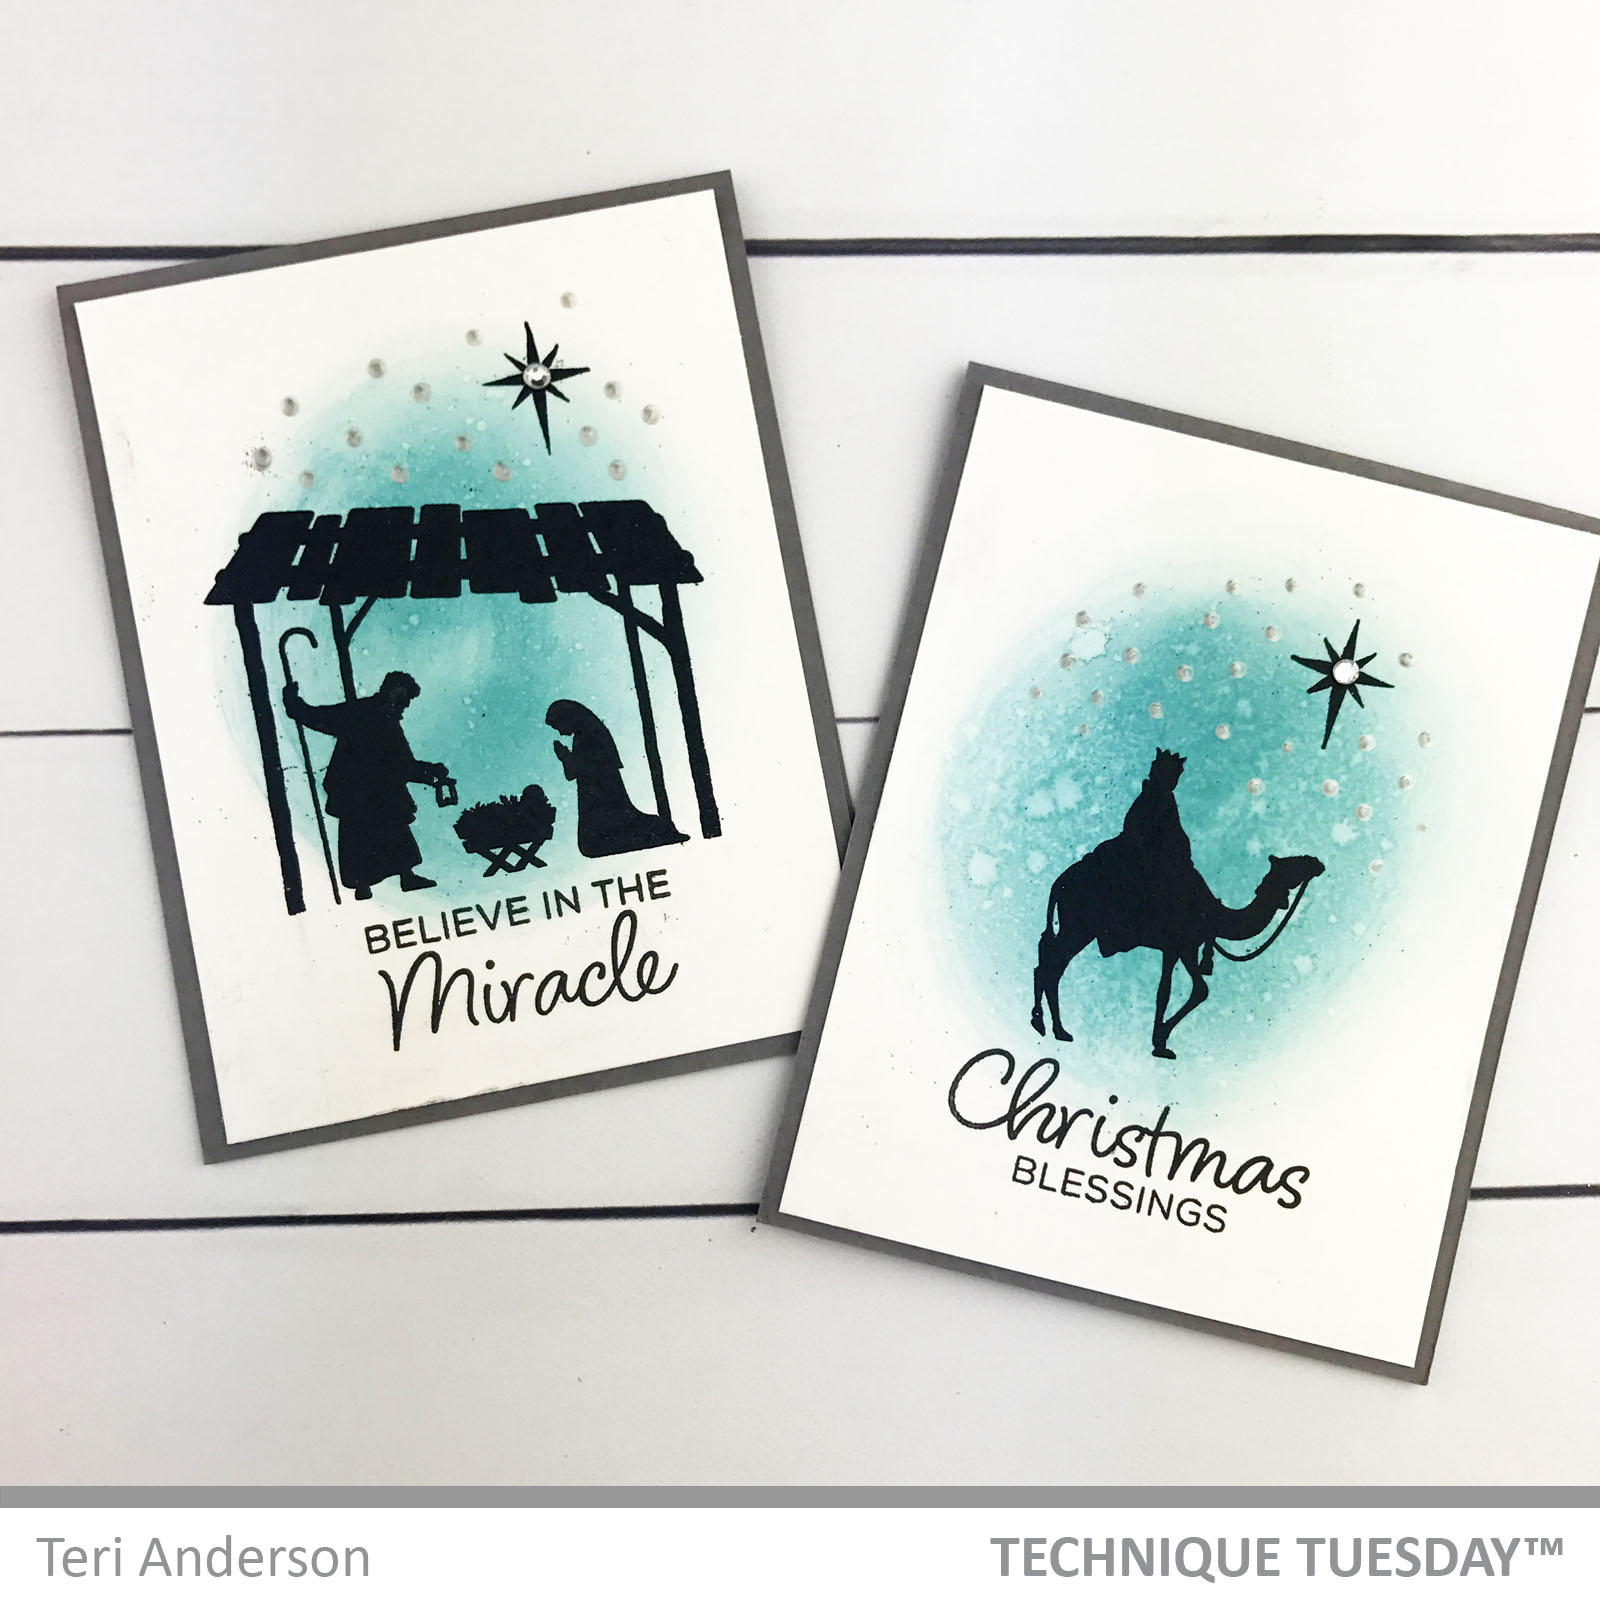 Technique Tuesday Ideas And Inspiration Blog 10 Handmade Christmas Cards And Holiday Projects